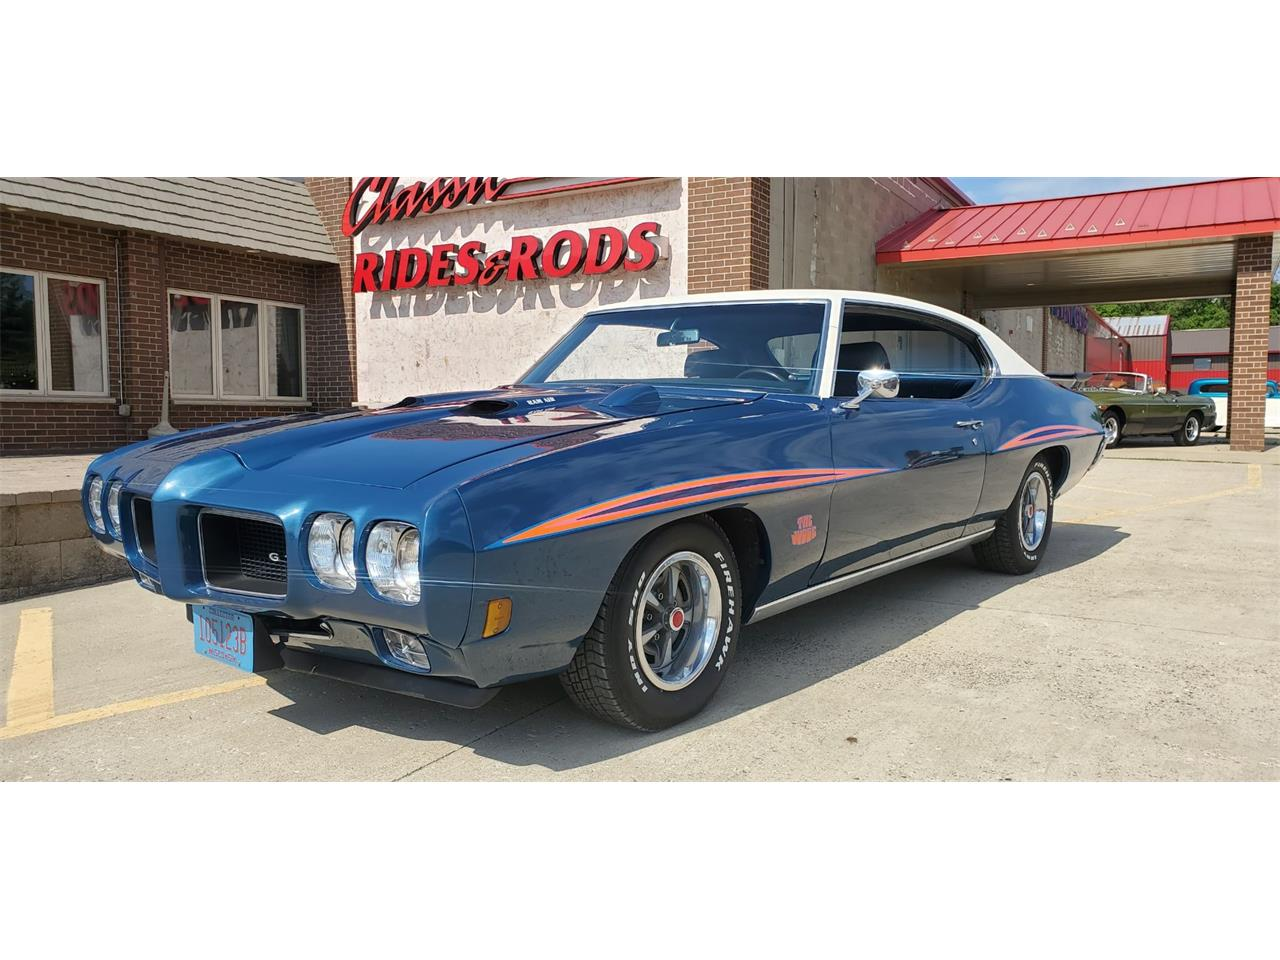 1970 Pontiac GTO (The Judge) (CC-1355713) for sale in Annandale, Minnesota